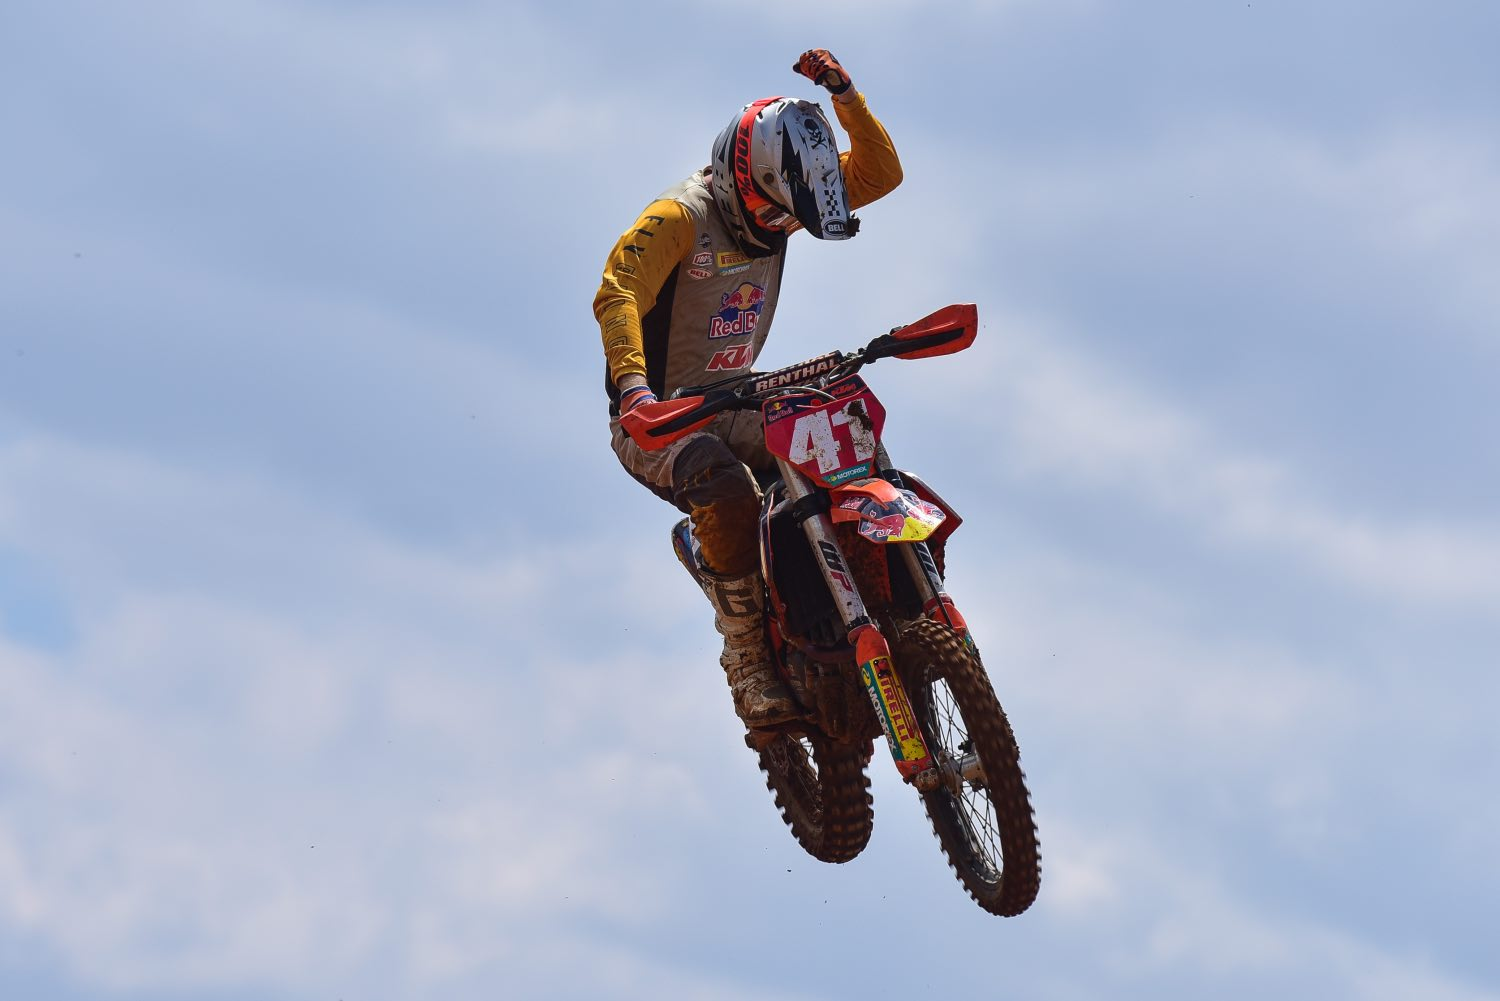 Tristan Purdon racing the fifth round of the 2021 South African National Motocross Championship